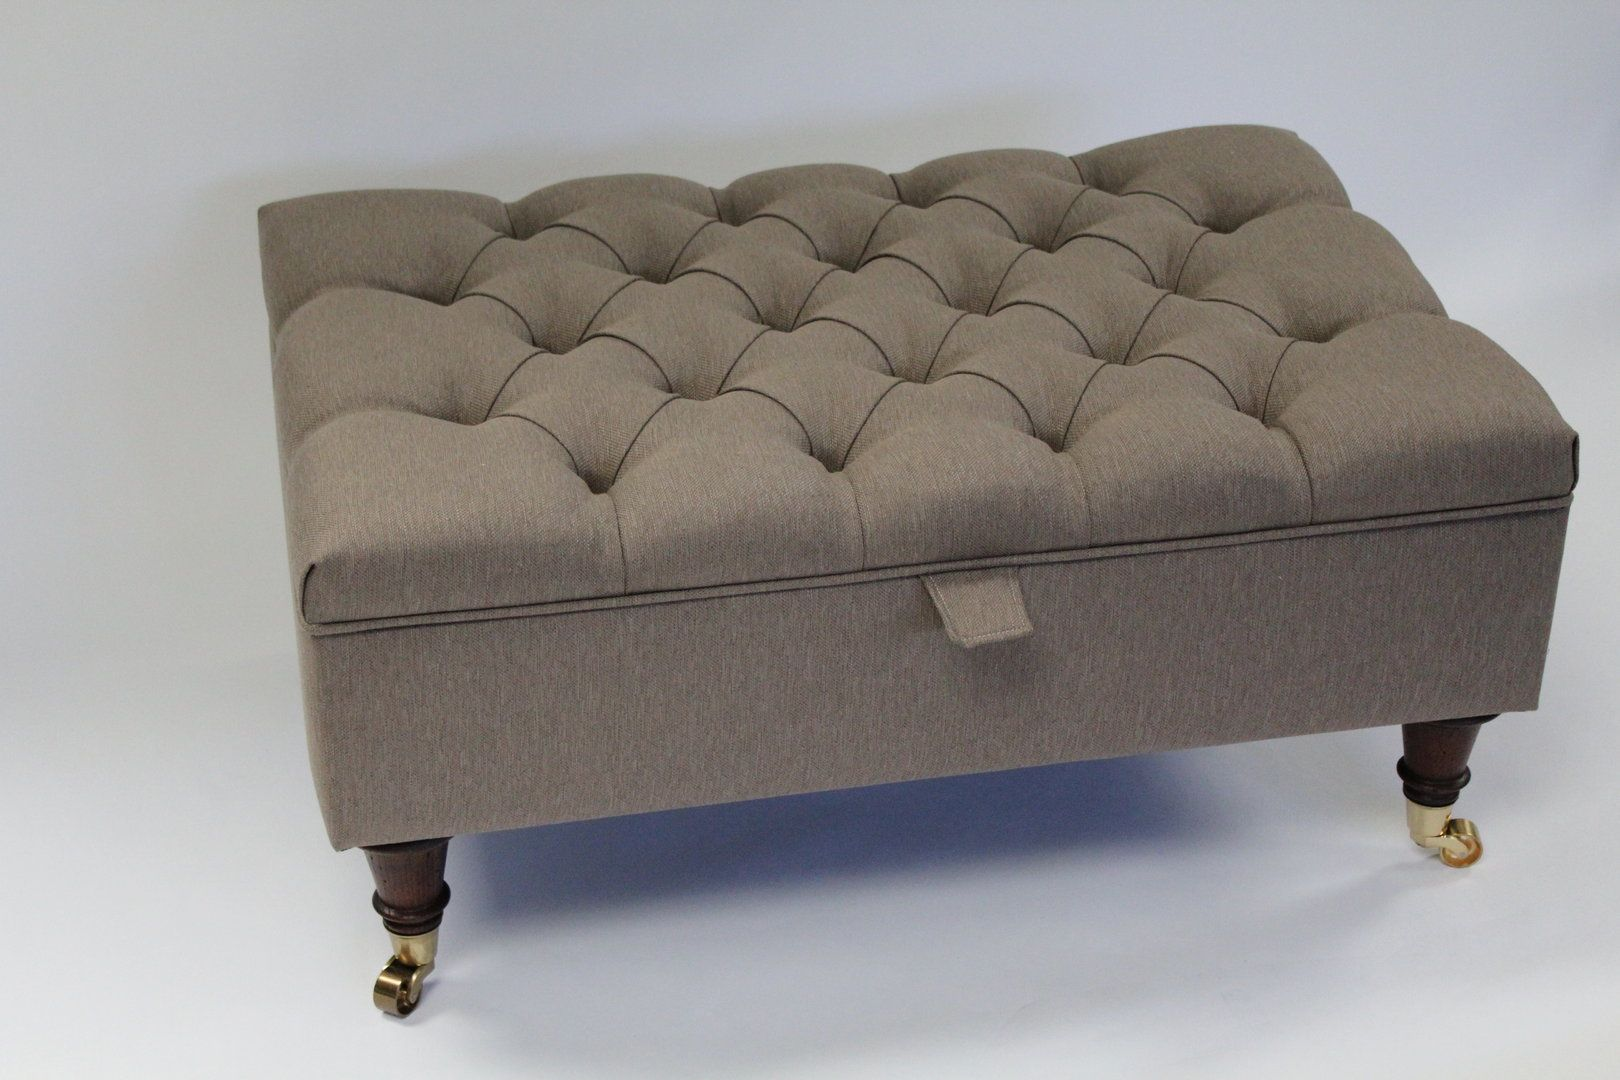 Light Brown Linen Chesterfield Upholstered Coffee Table Storage Ottoman Footstool Simply Chaise 199